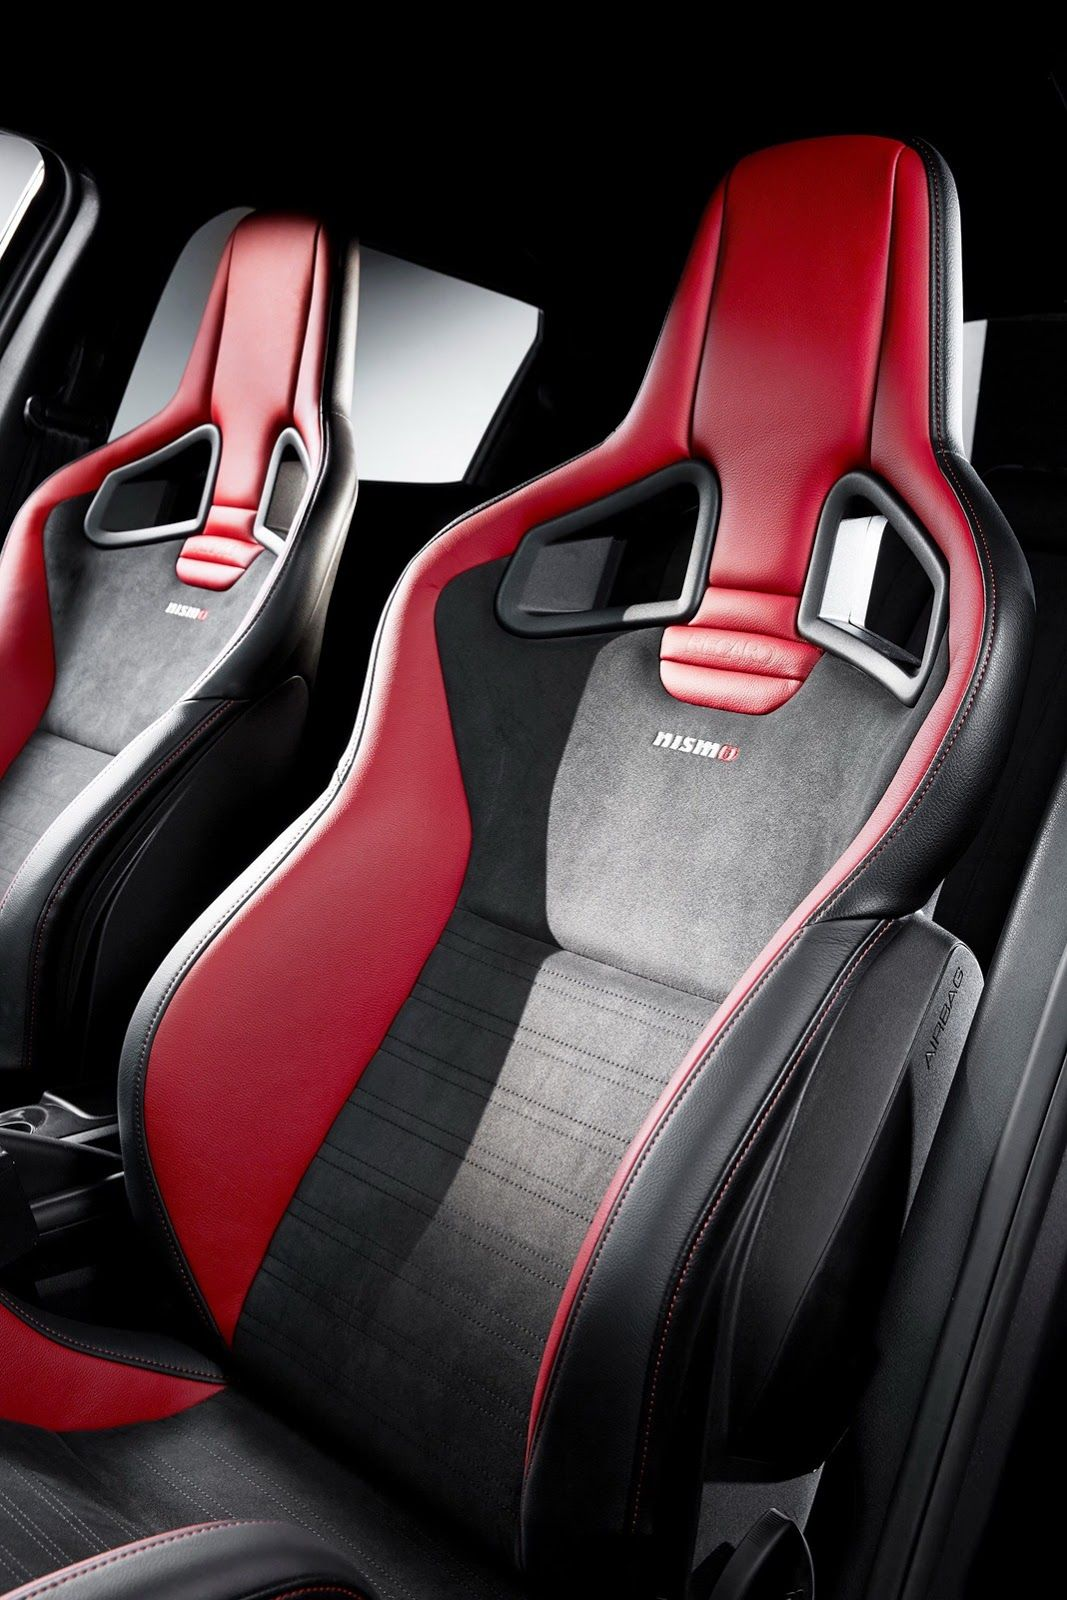 Phenomenal Facelifted Nissan Juke Nismo Rs Gets A Power Boost As Well Caraccident5 Cool Chair Designs And Ideas Caraccident5Info